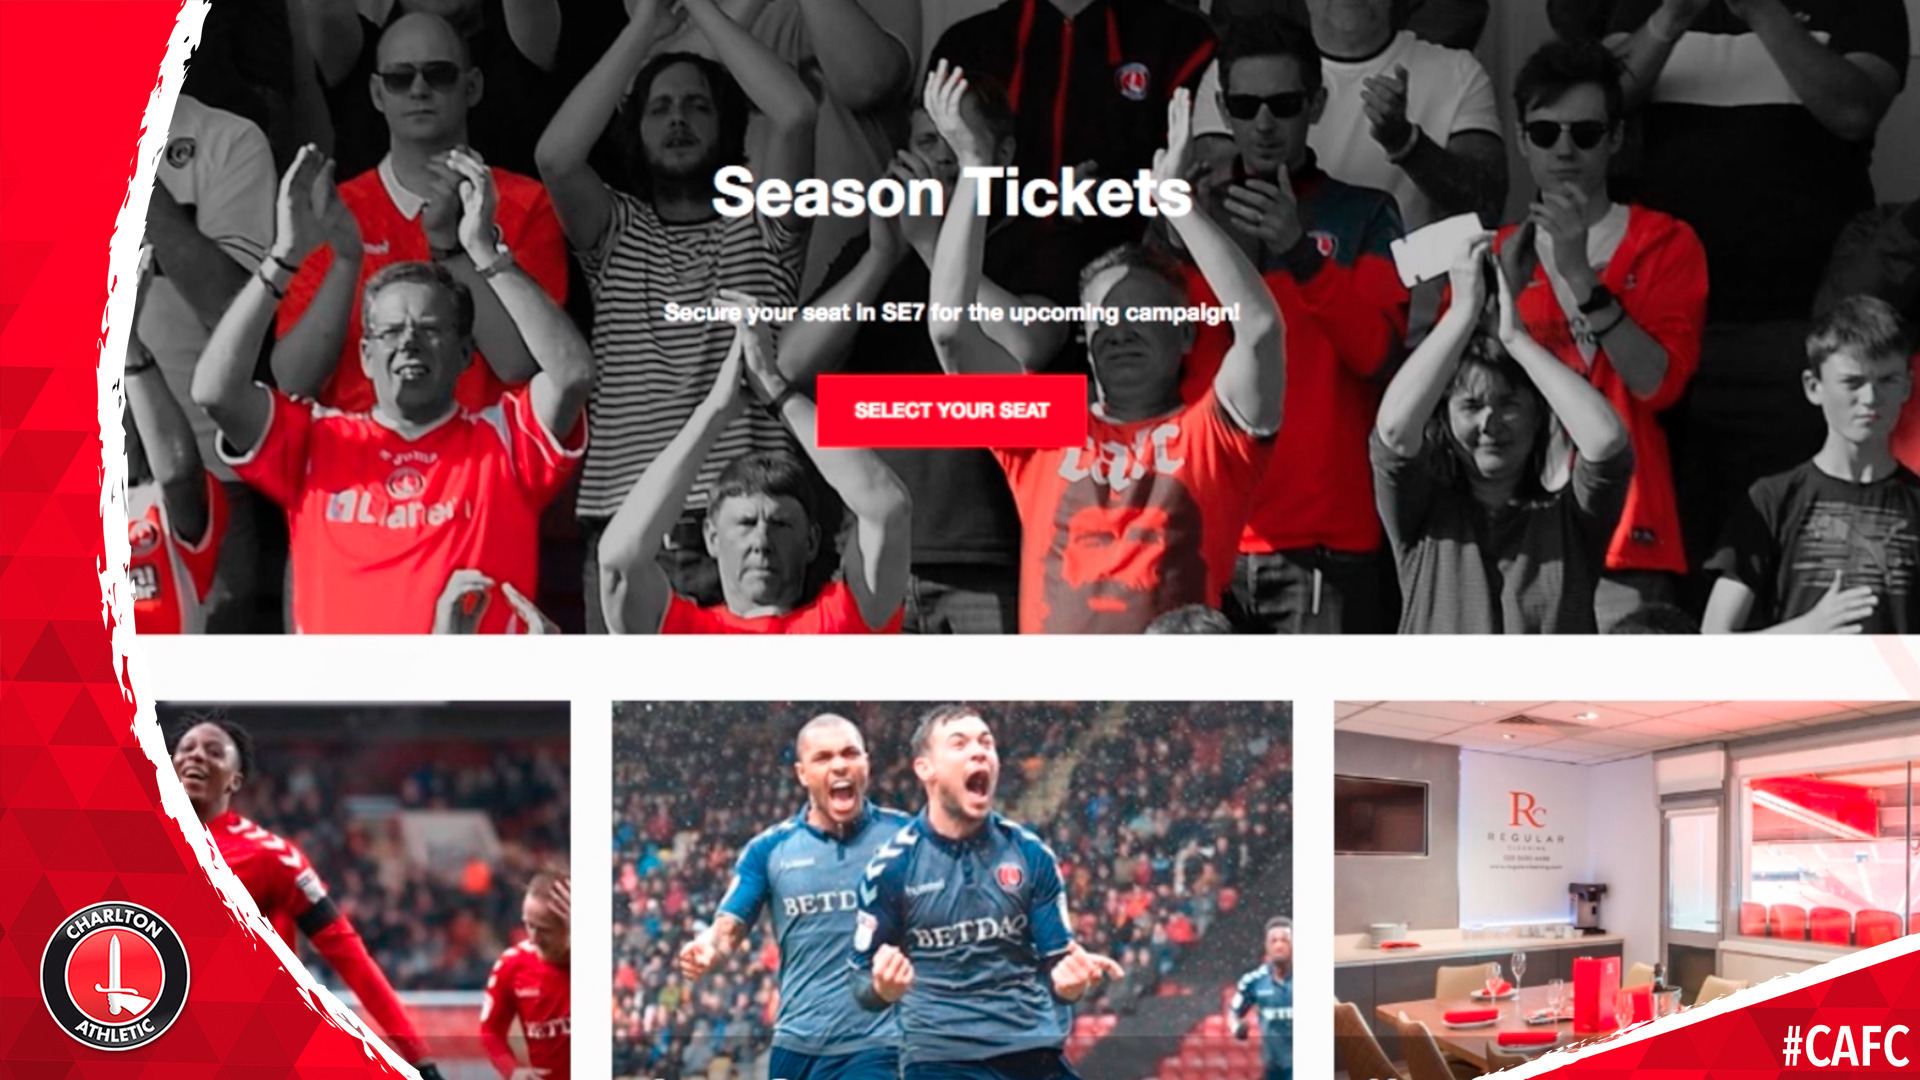 Buying a season ticket on the new ticketing system